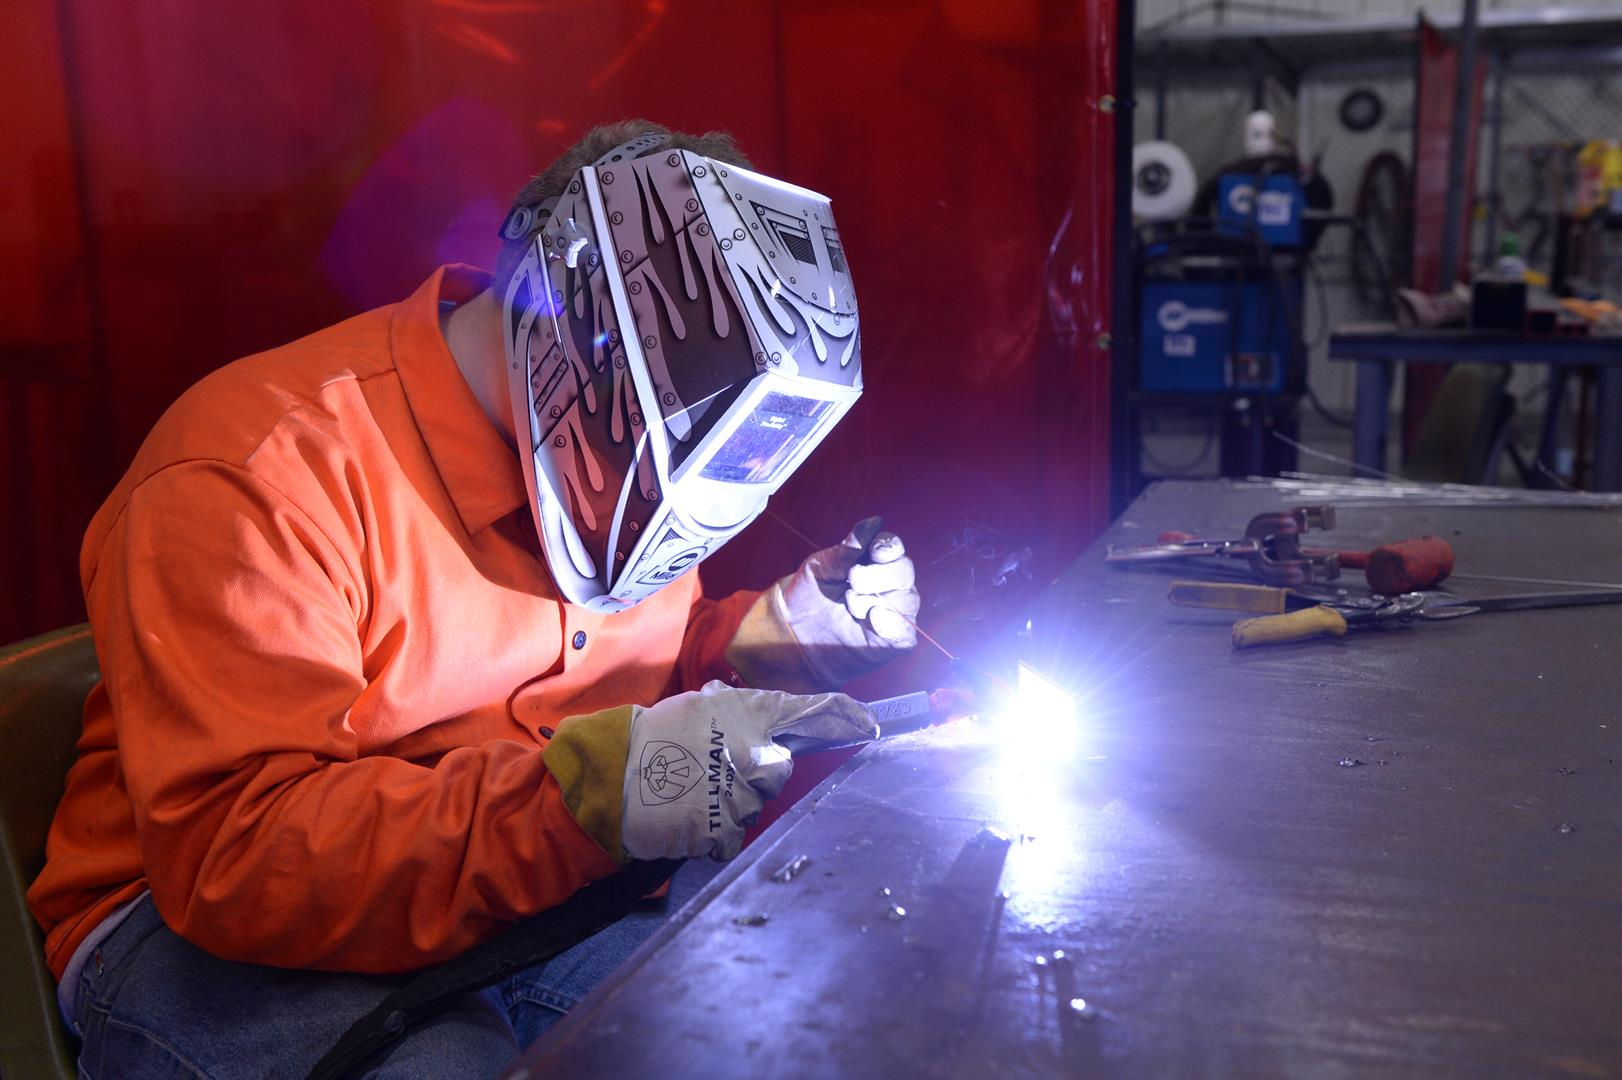 A student welds a thin metal rod